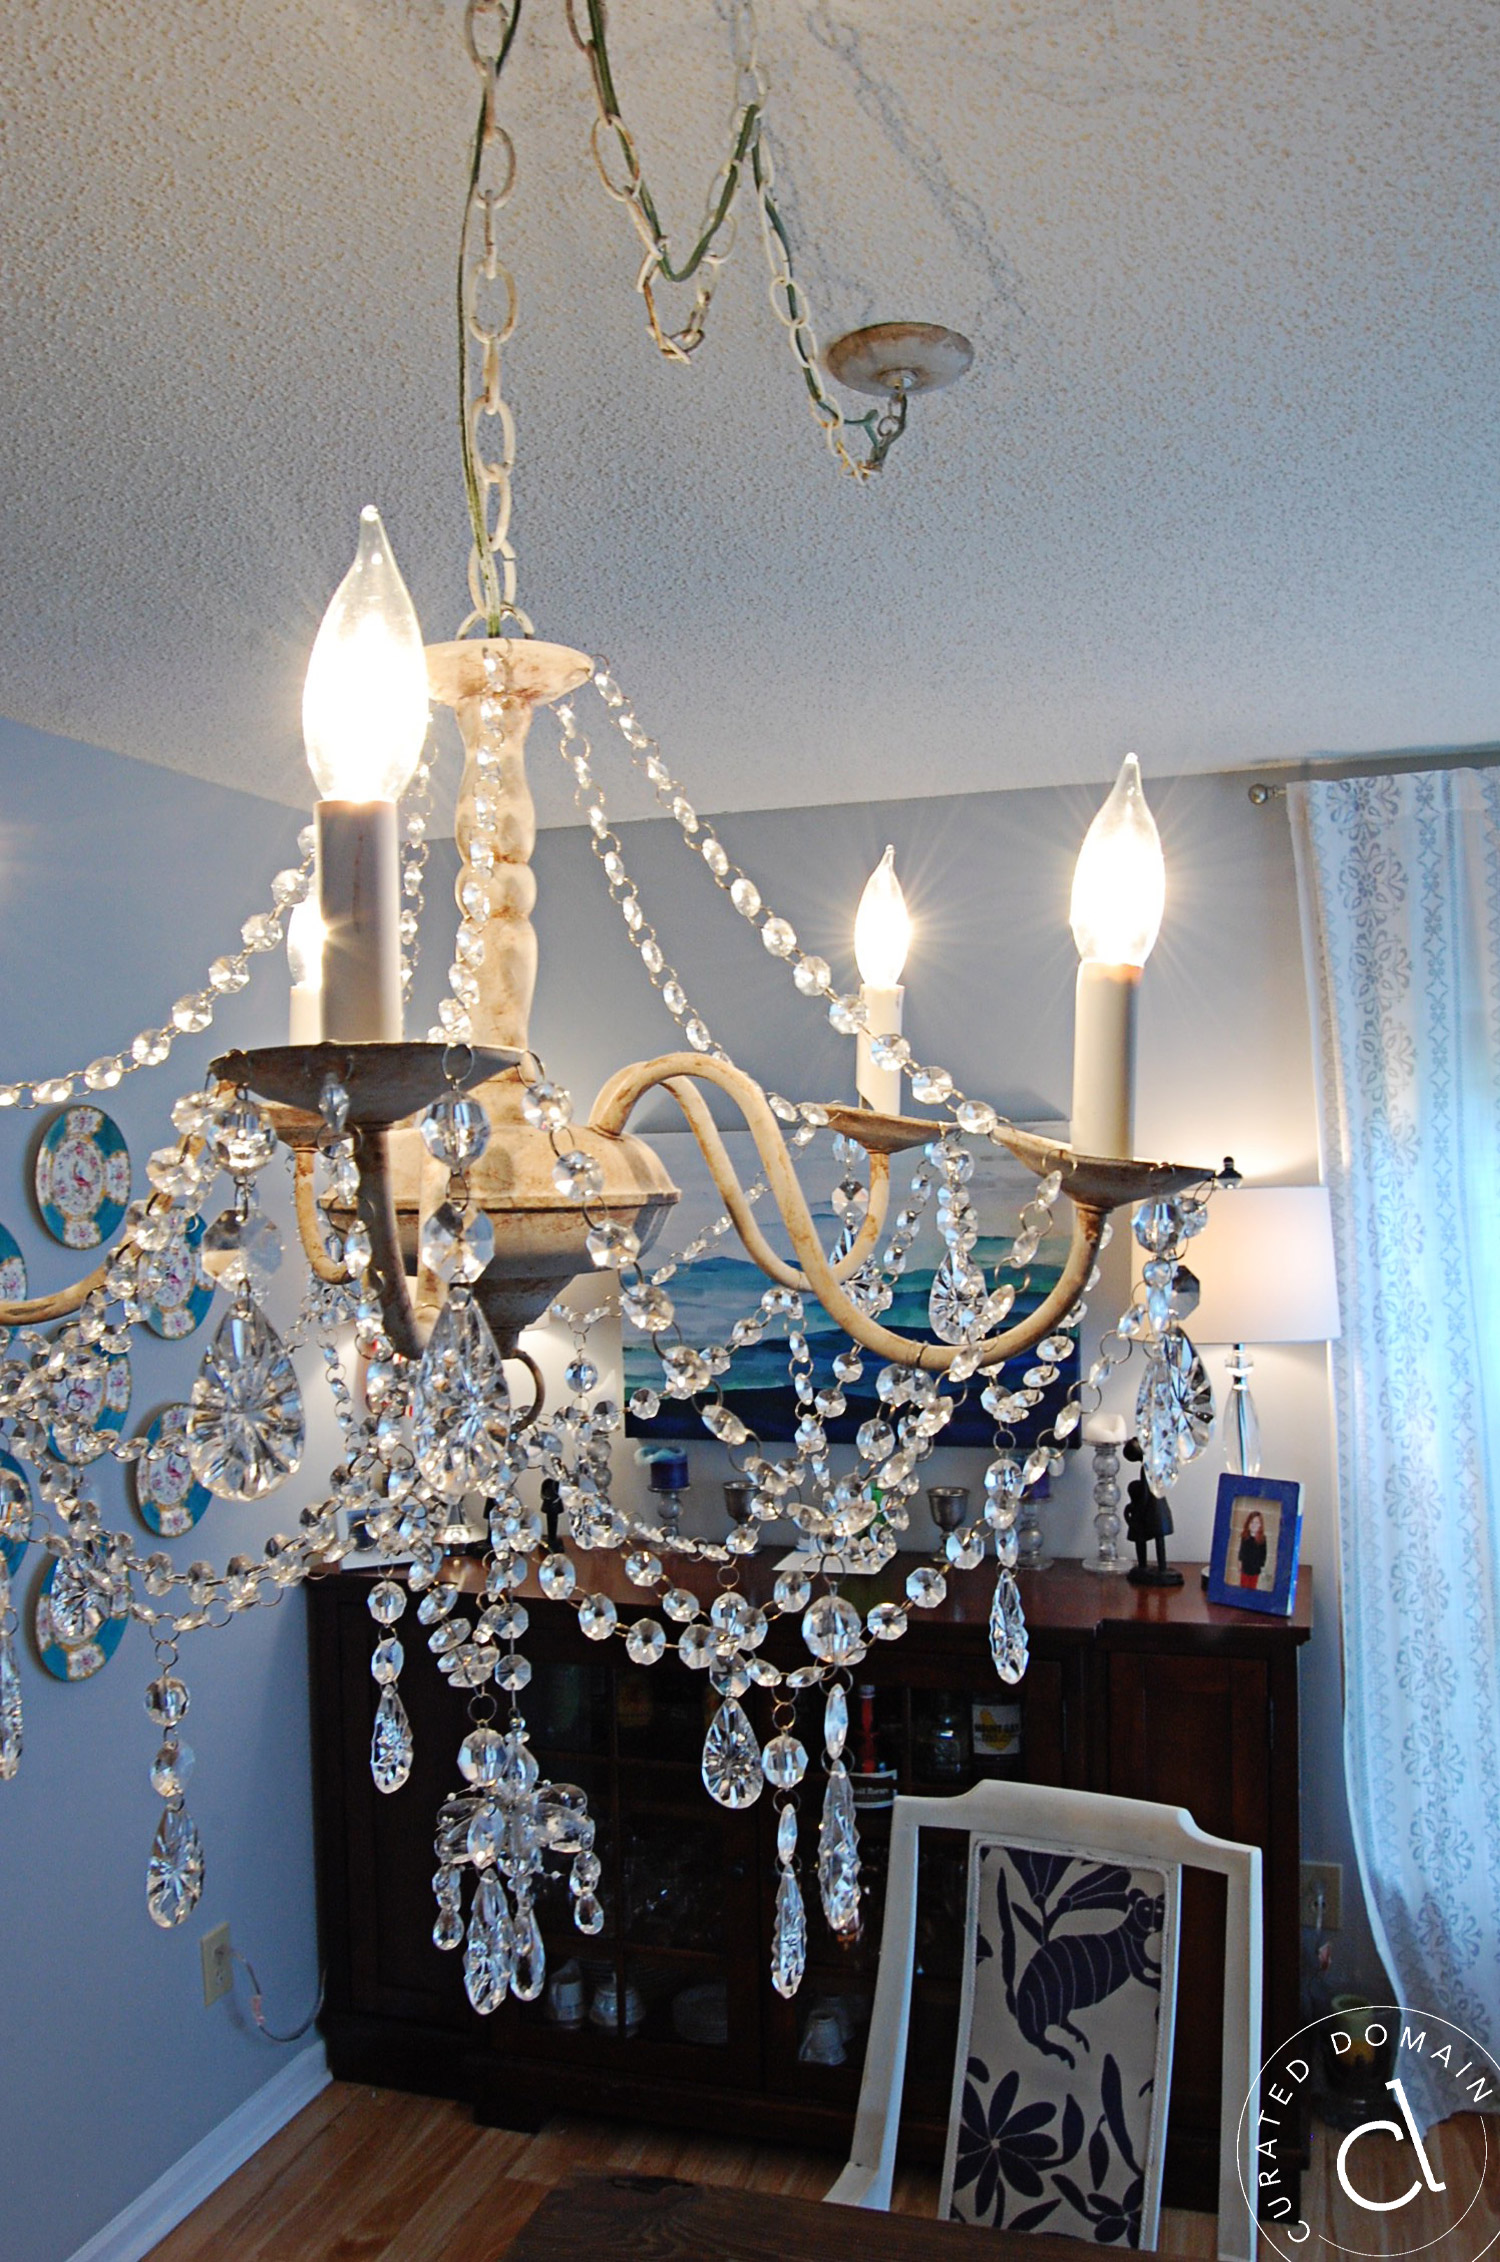 Rustic Glam Chandelier – Curated Domain